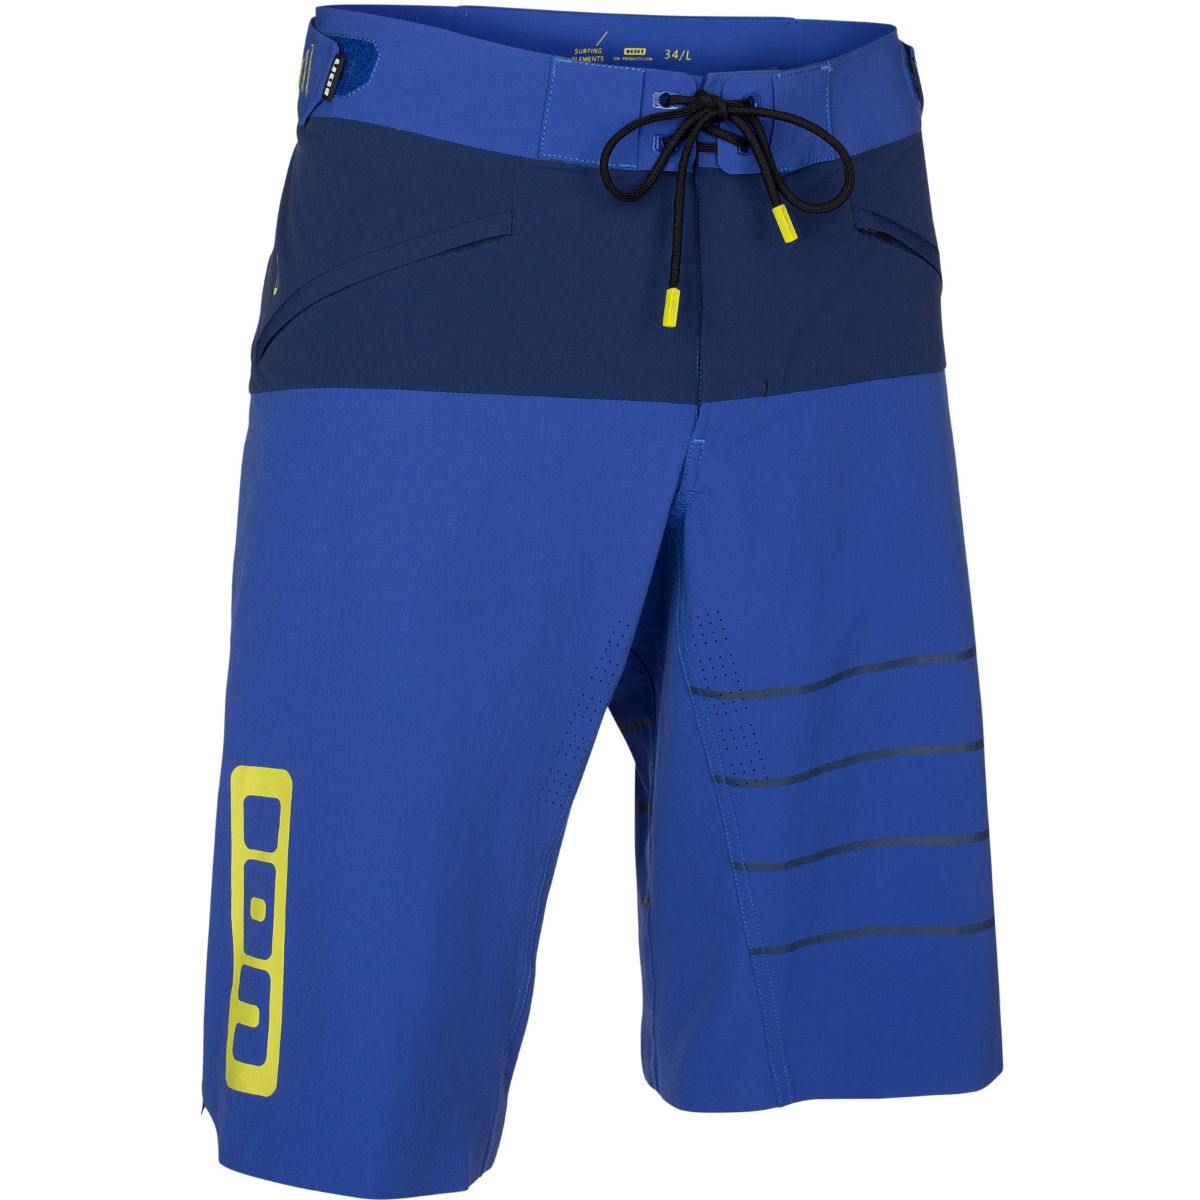 Short Ion Avic - XL Bleu Shorts VTT